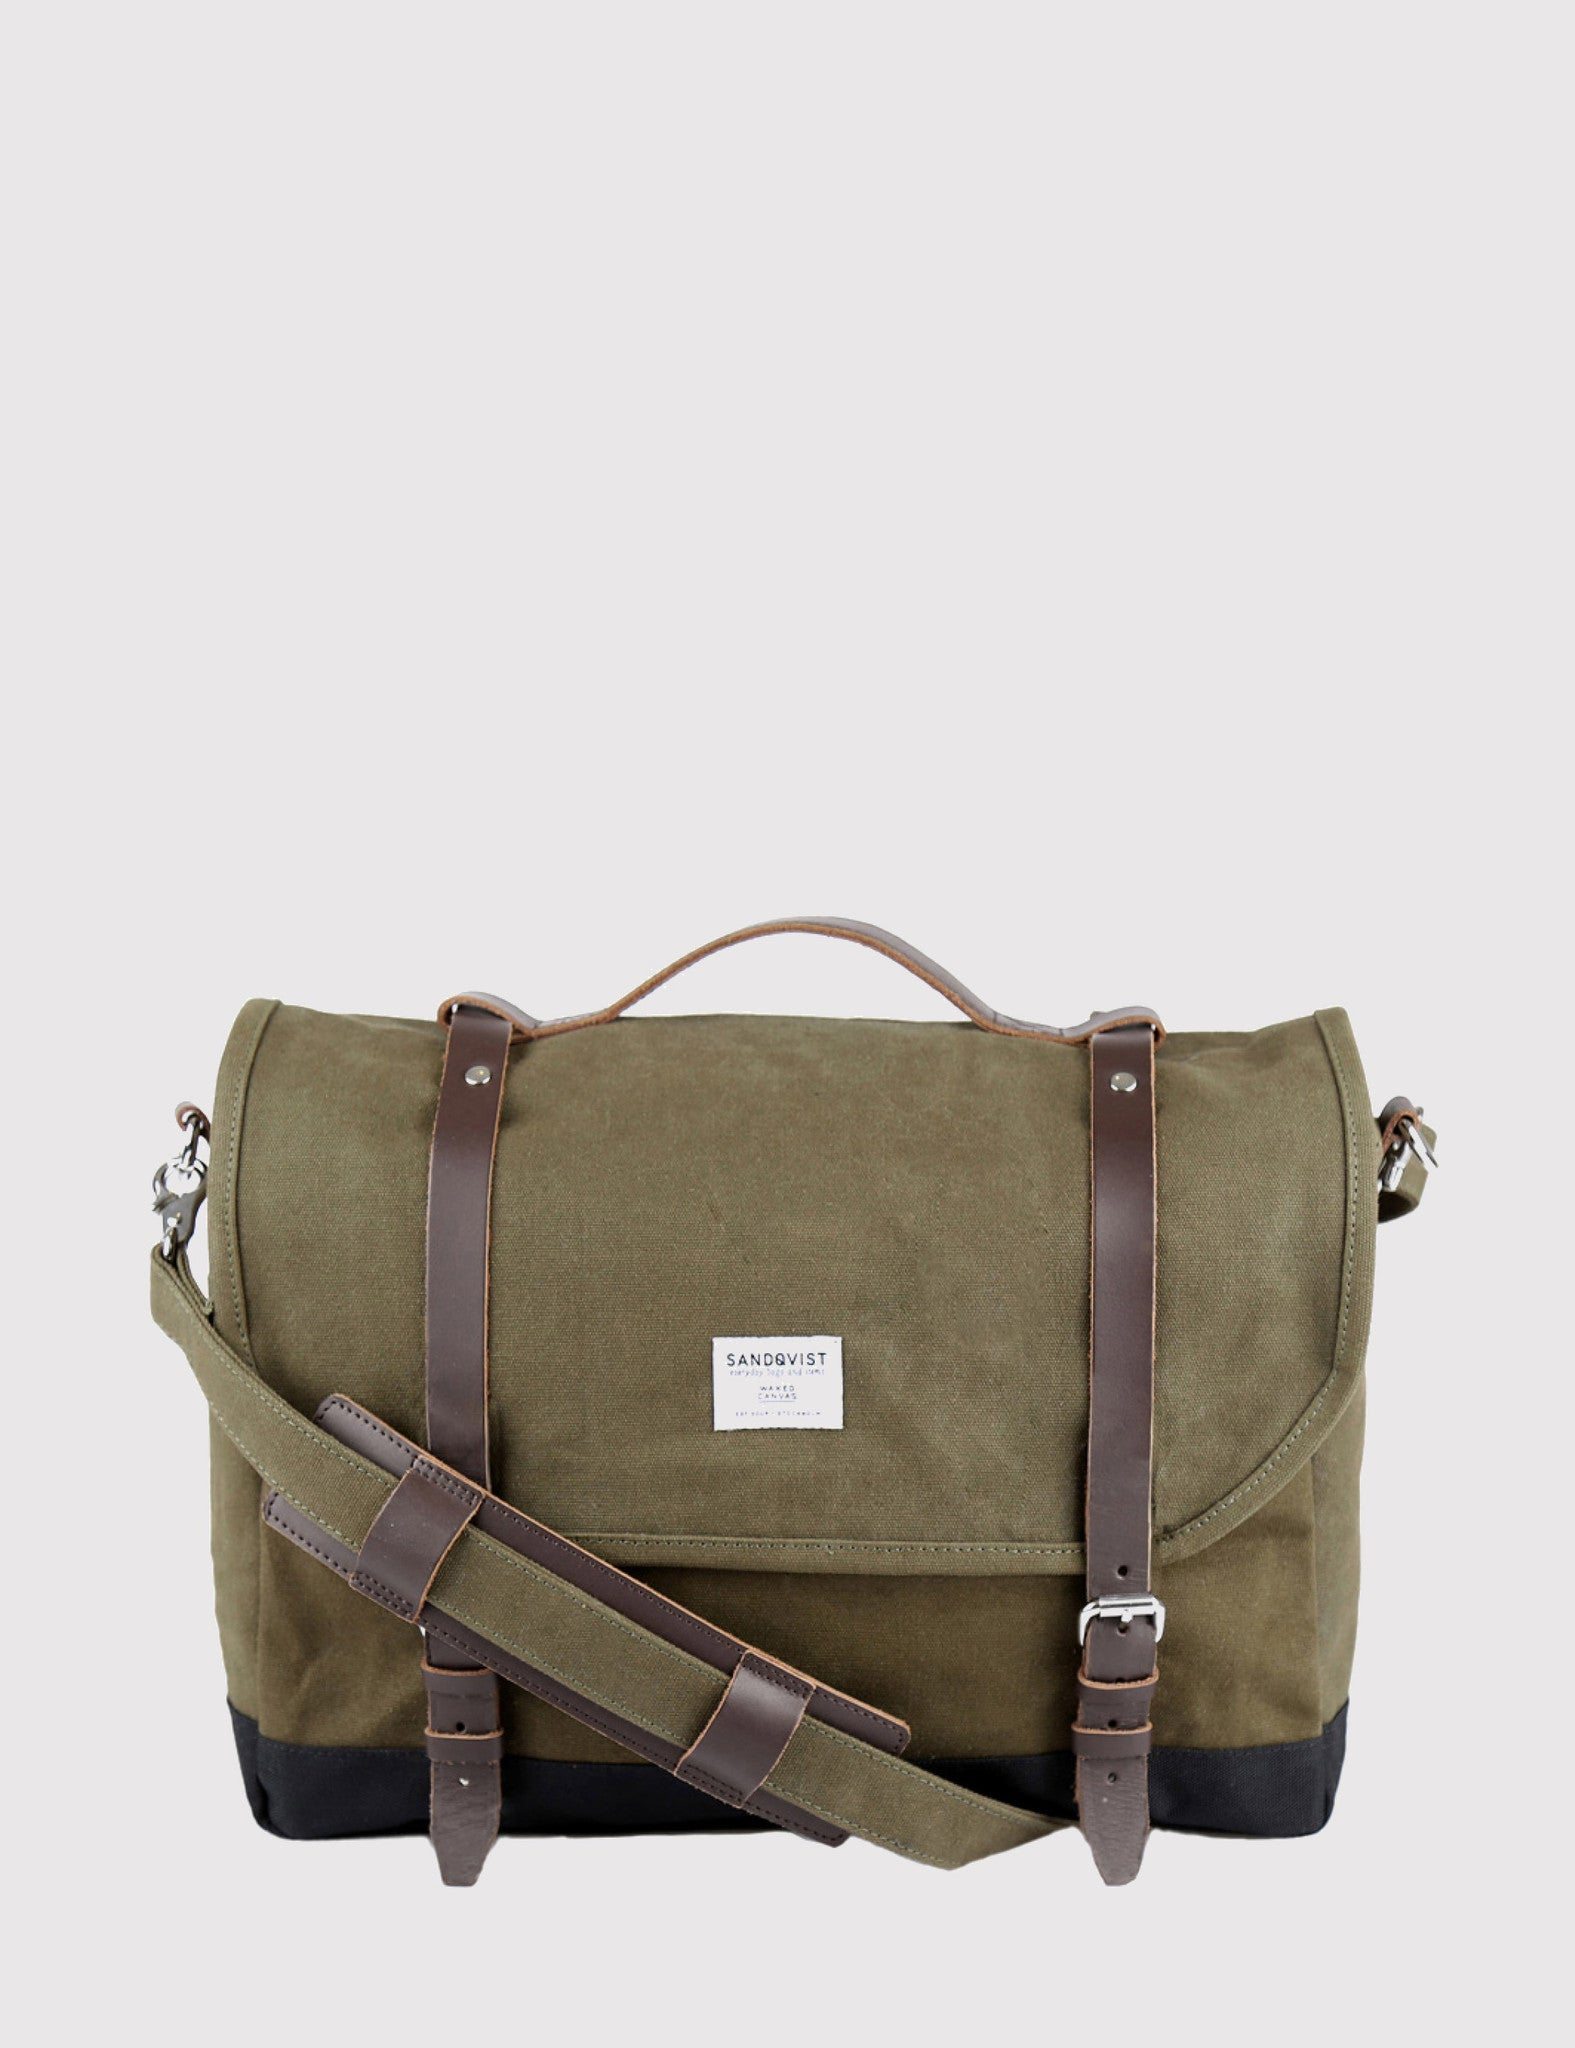 Sandqvist Izzy Backpack (Waxed) - Olive Green